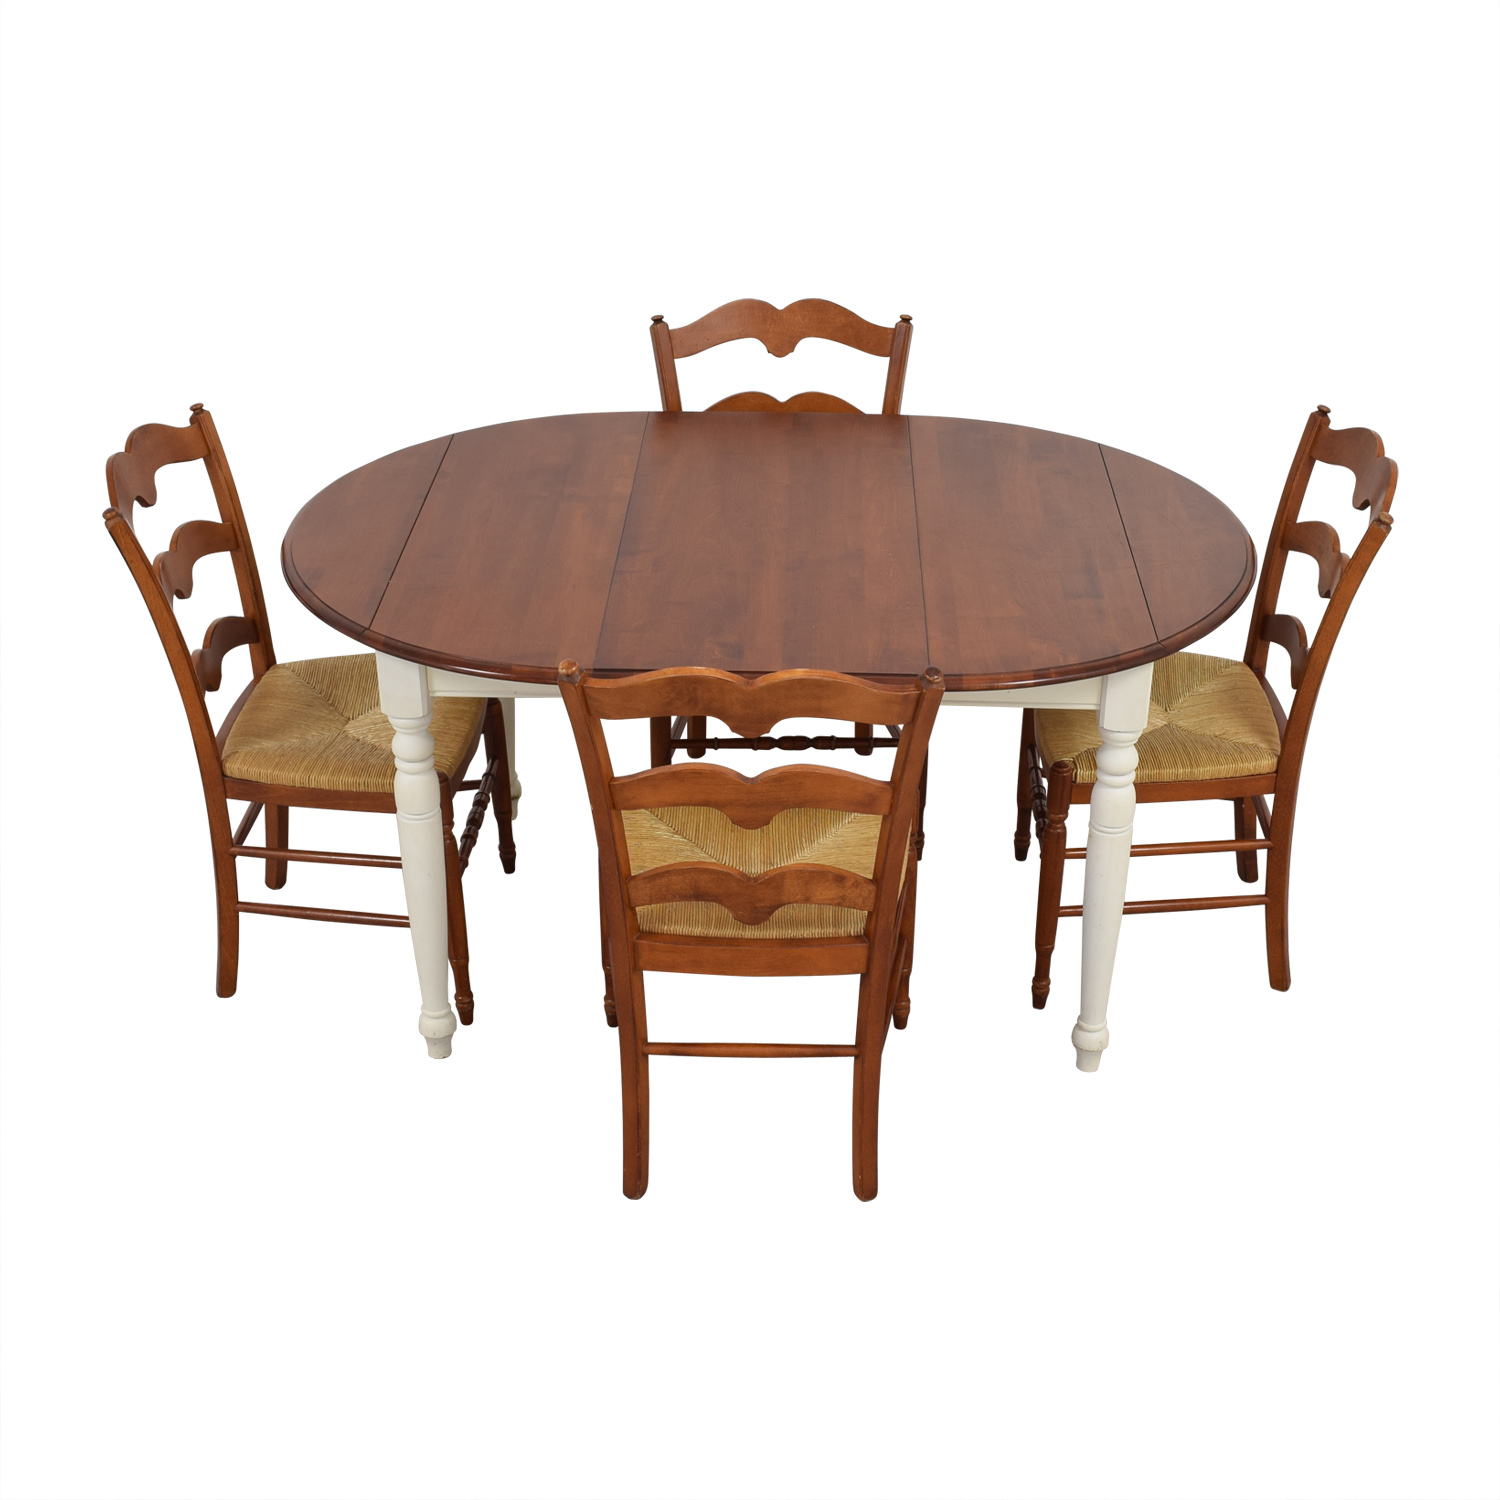 Multicolored Wooden Dining Set with Leaf Extension nj